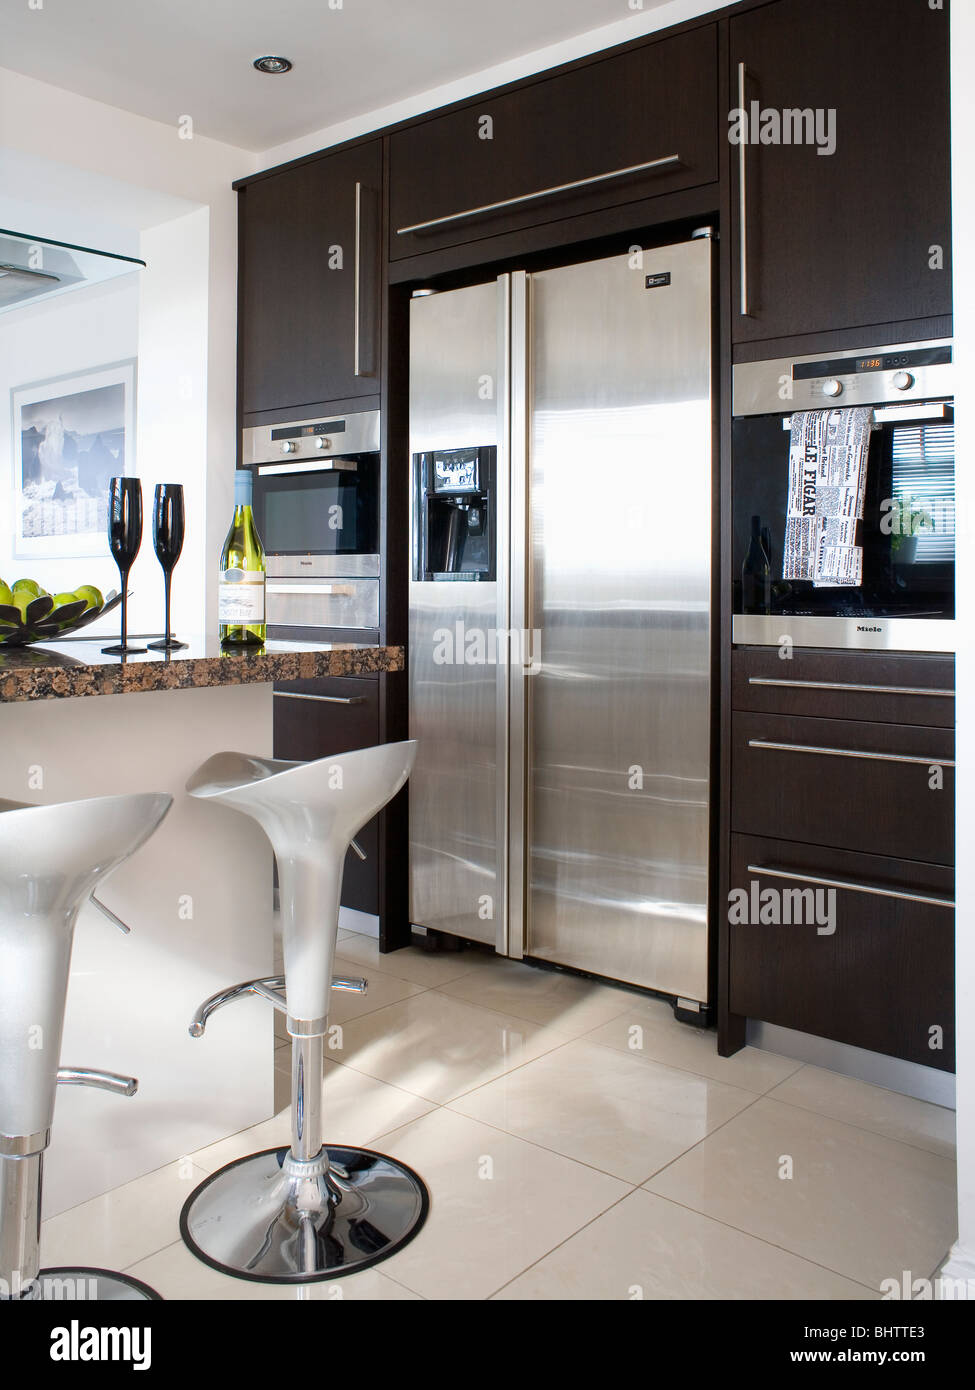 Steel Bombo Stools In Modern Kitchen With Large American Style Stock